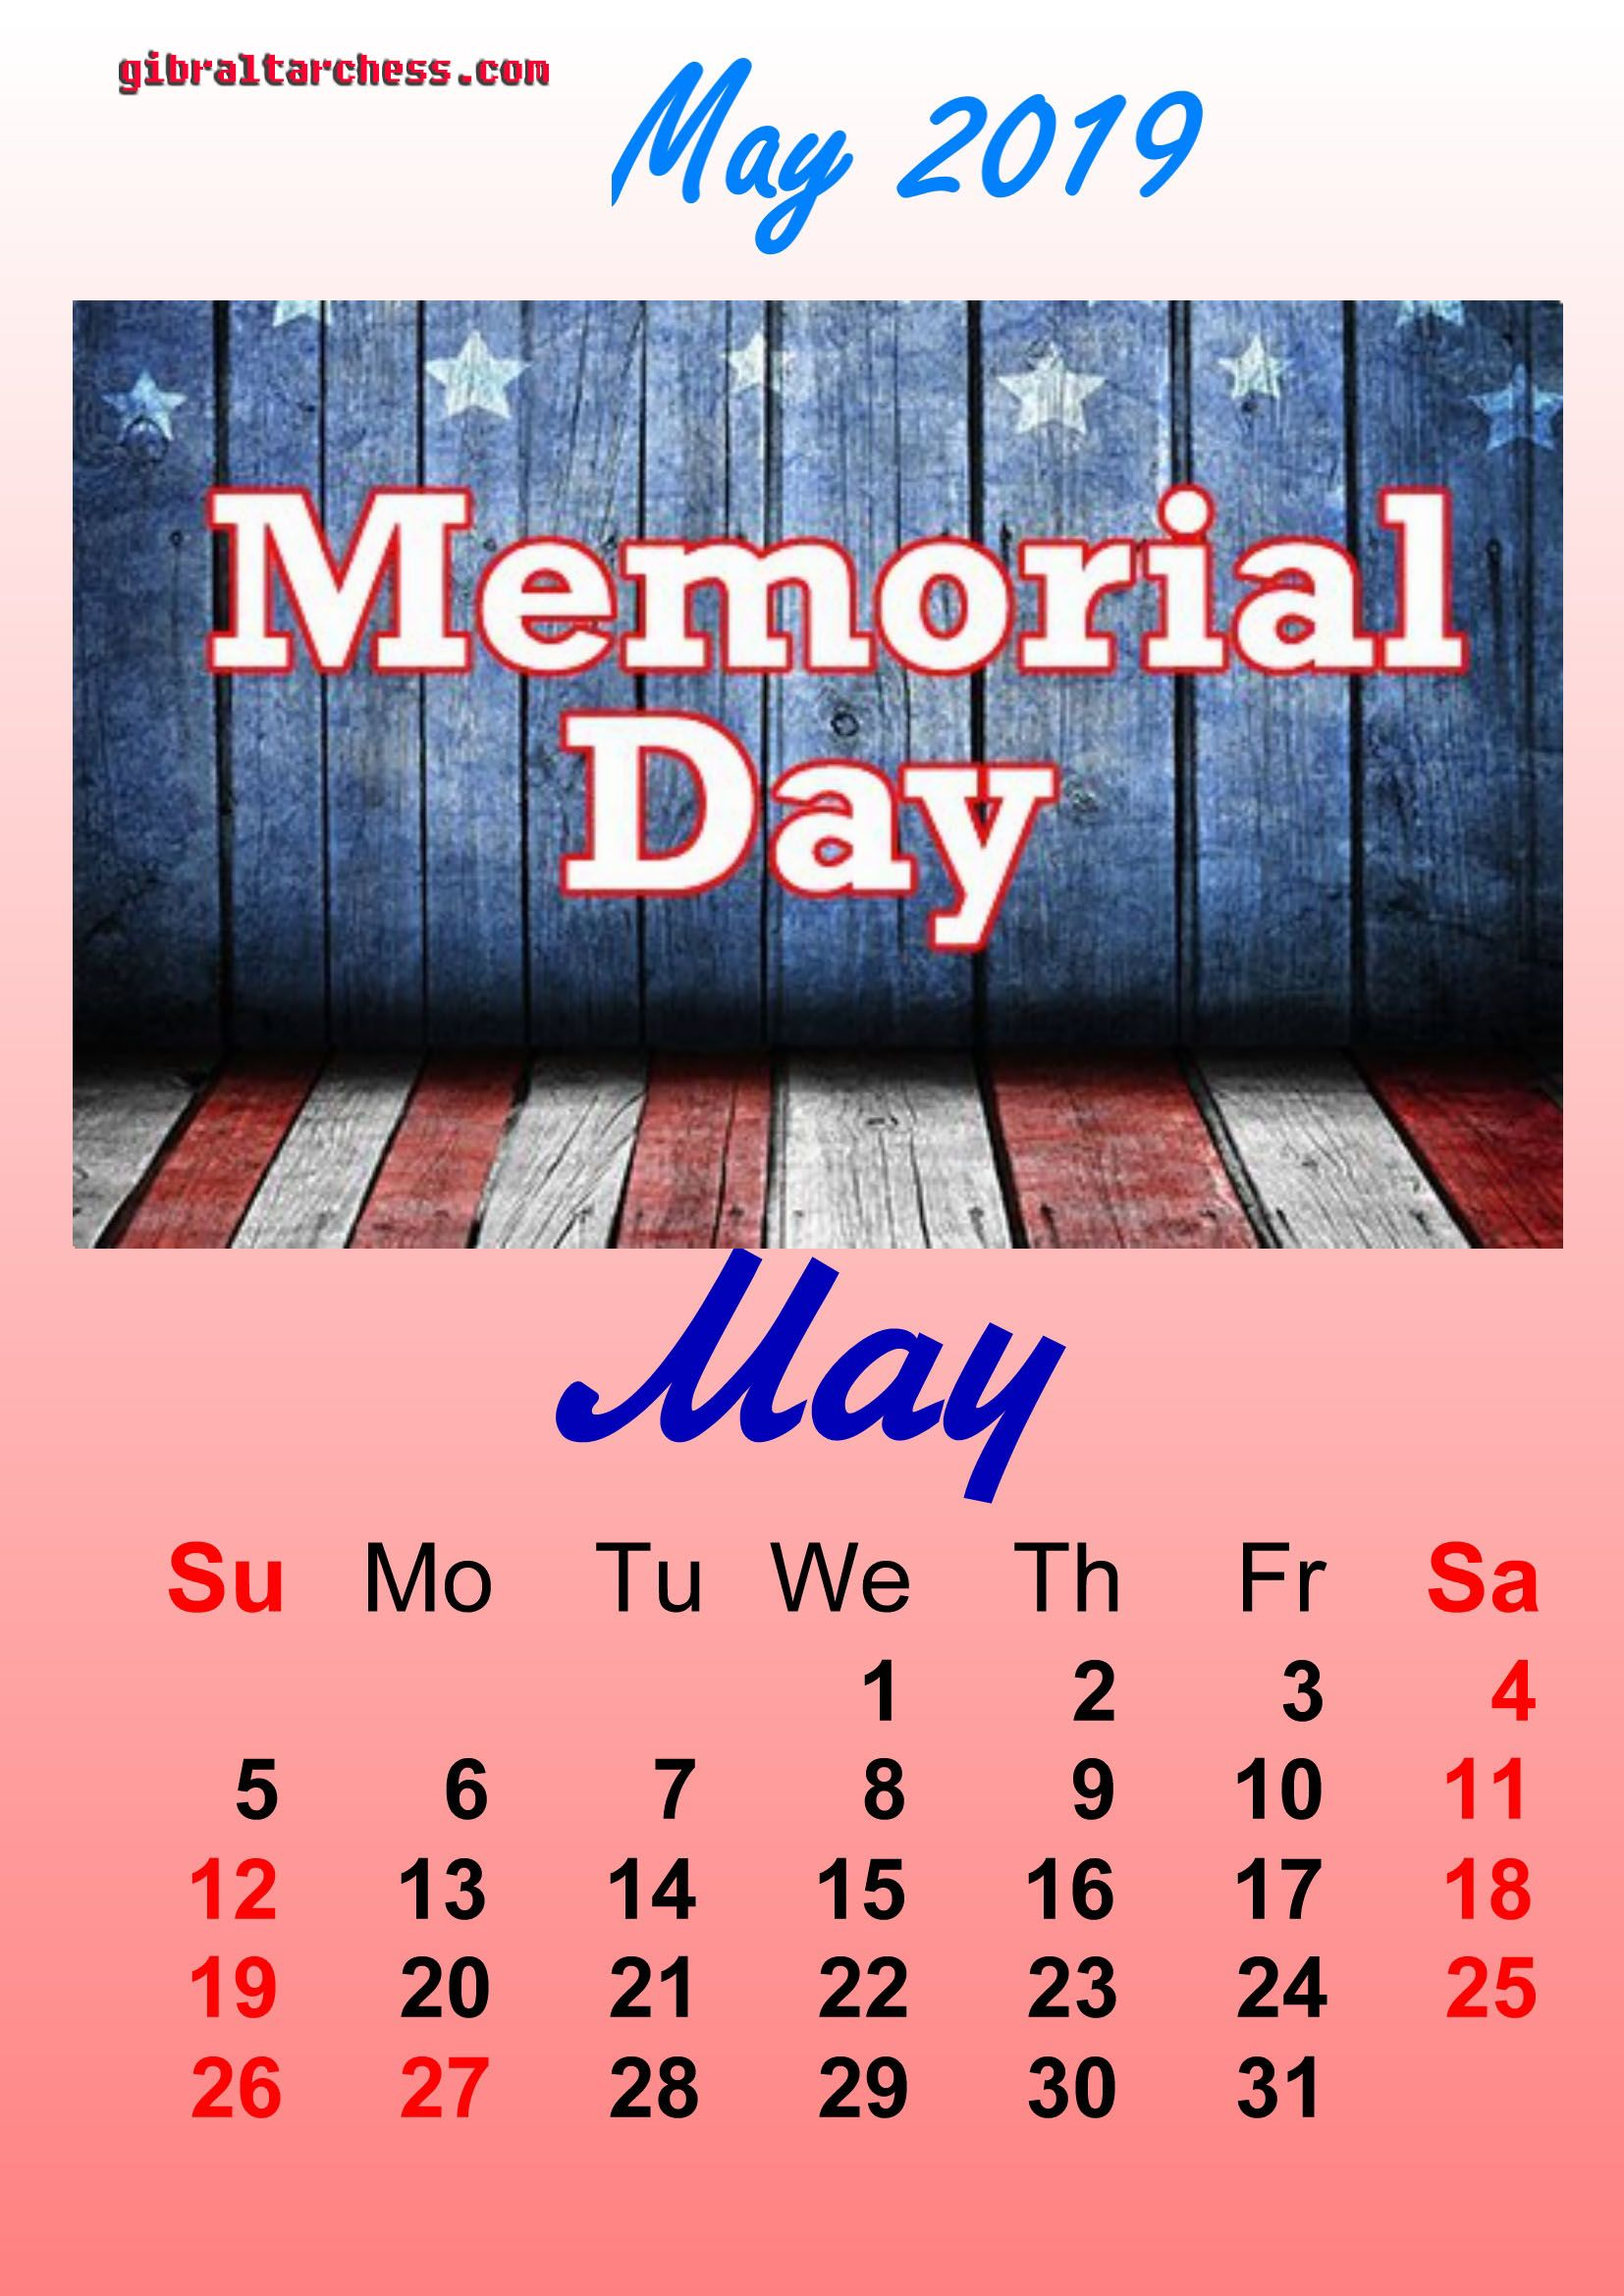 May 2019 Calendar Memorial Day 1 May 2019 Holidays Calendar Memorial Day | Calendar Template